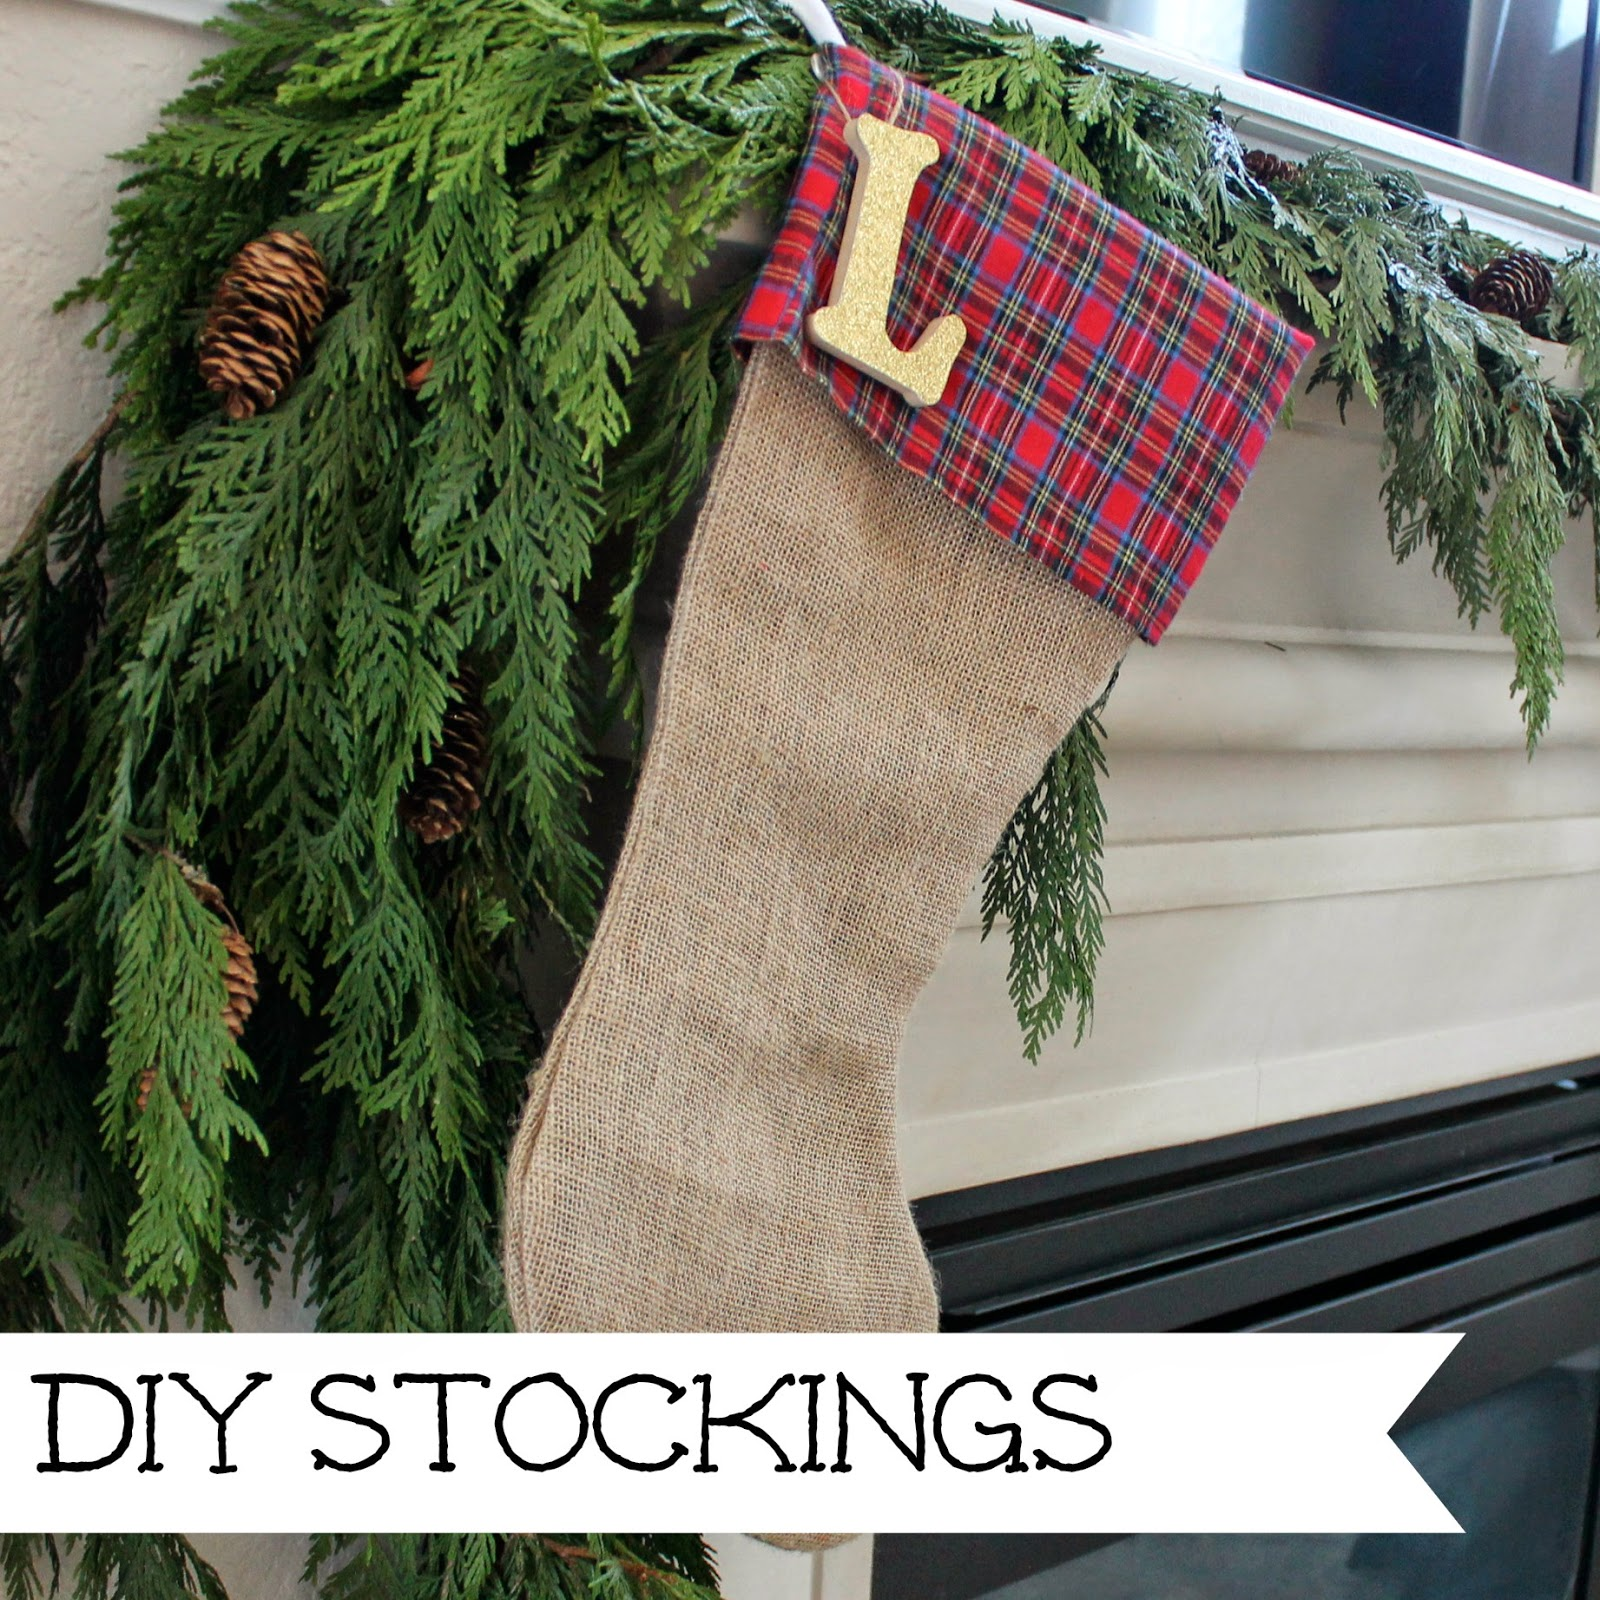 http://wonderfullymadebyleslie.blogspot.com/2013/12/our-christmas-stockings.html